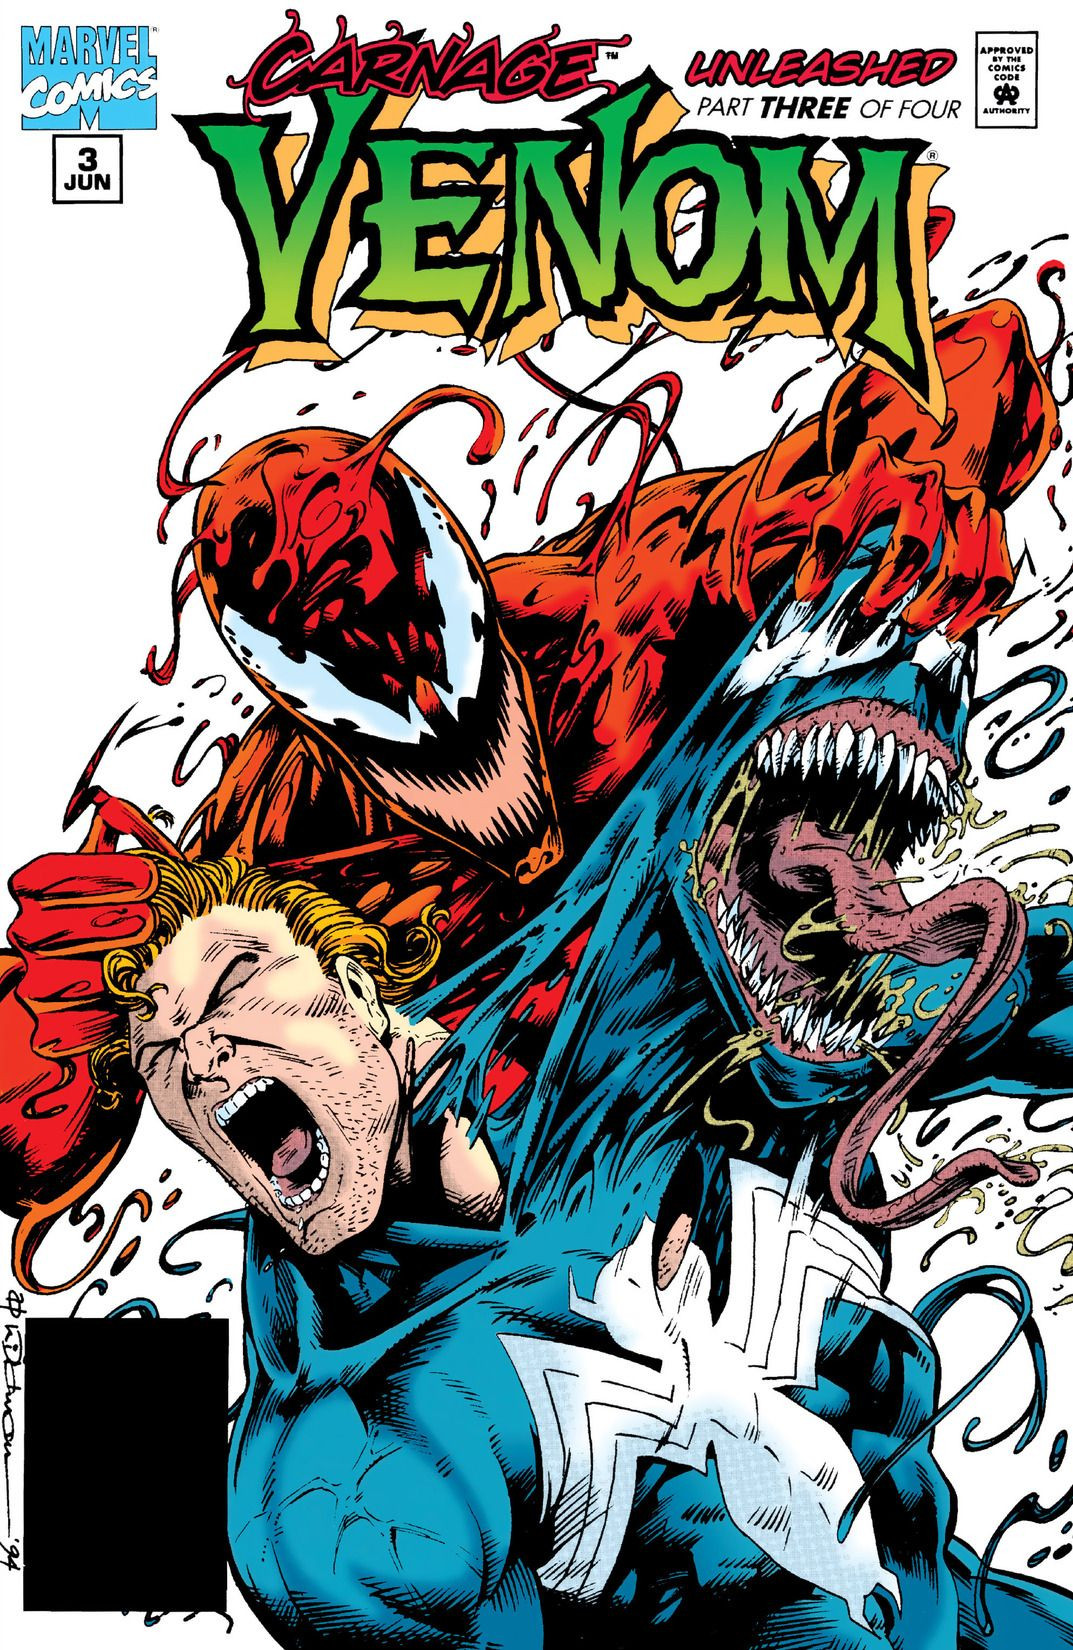 Venom: Carnage Unleashed Vol 1 3